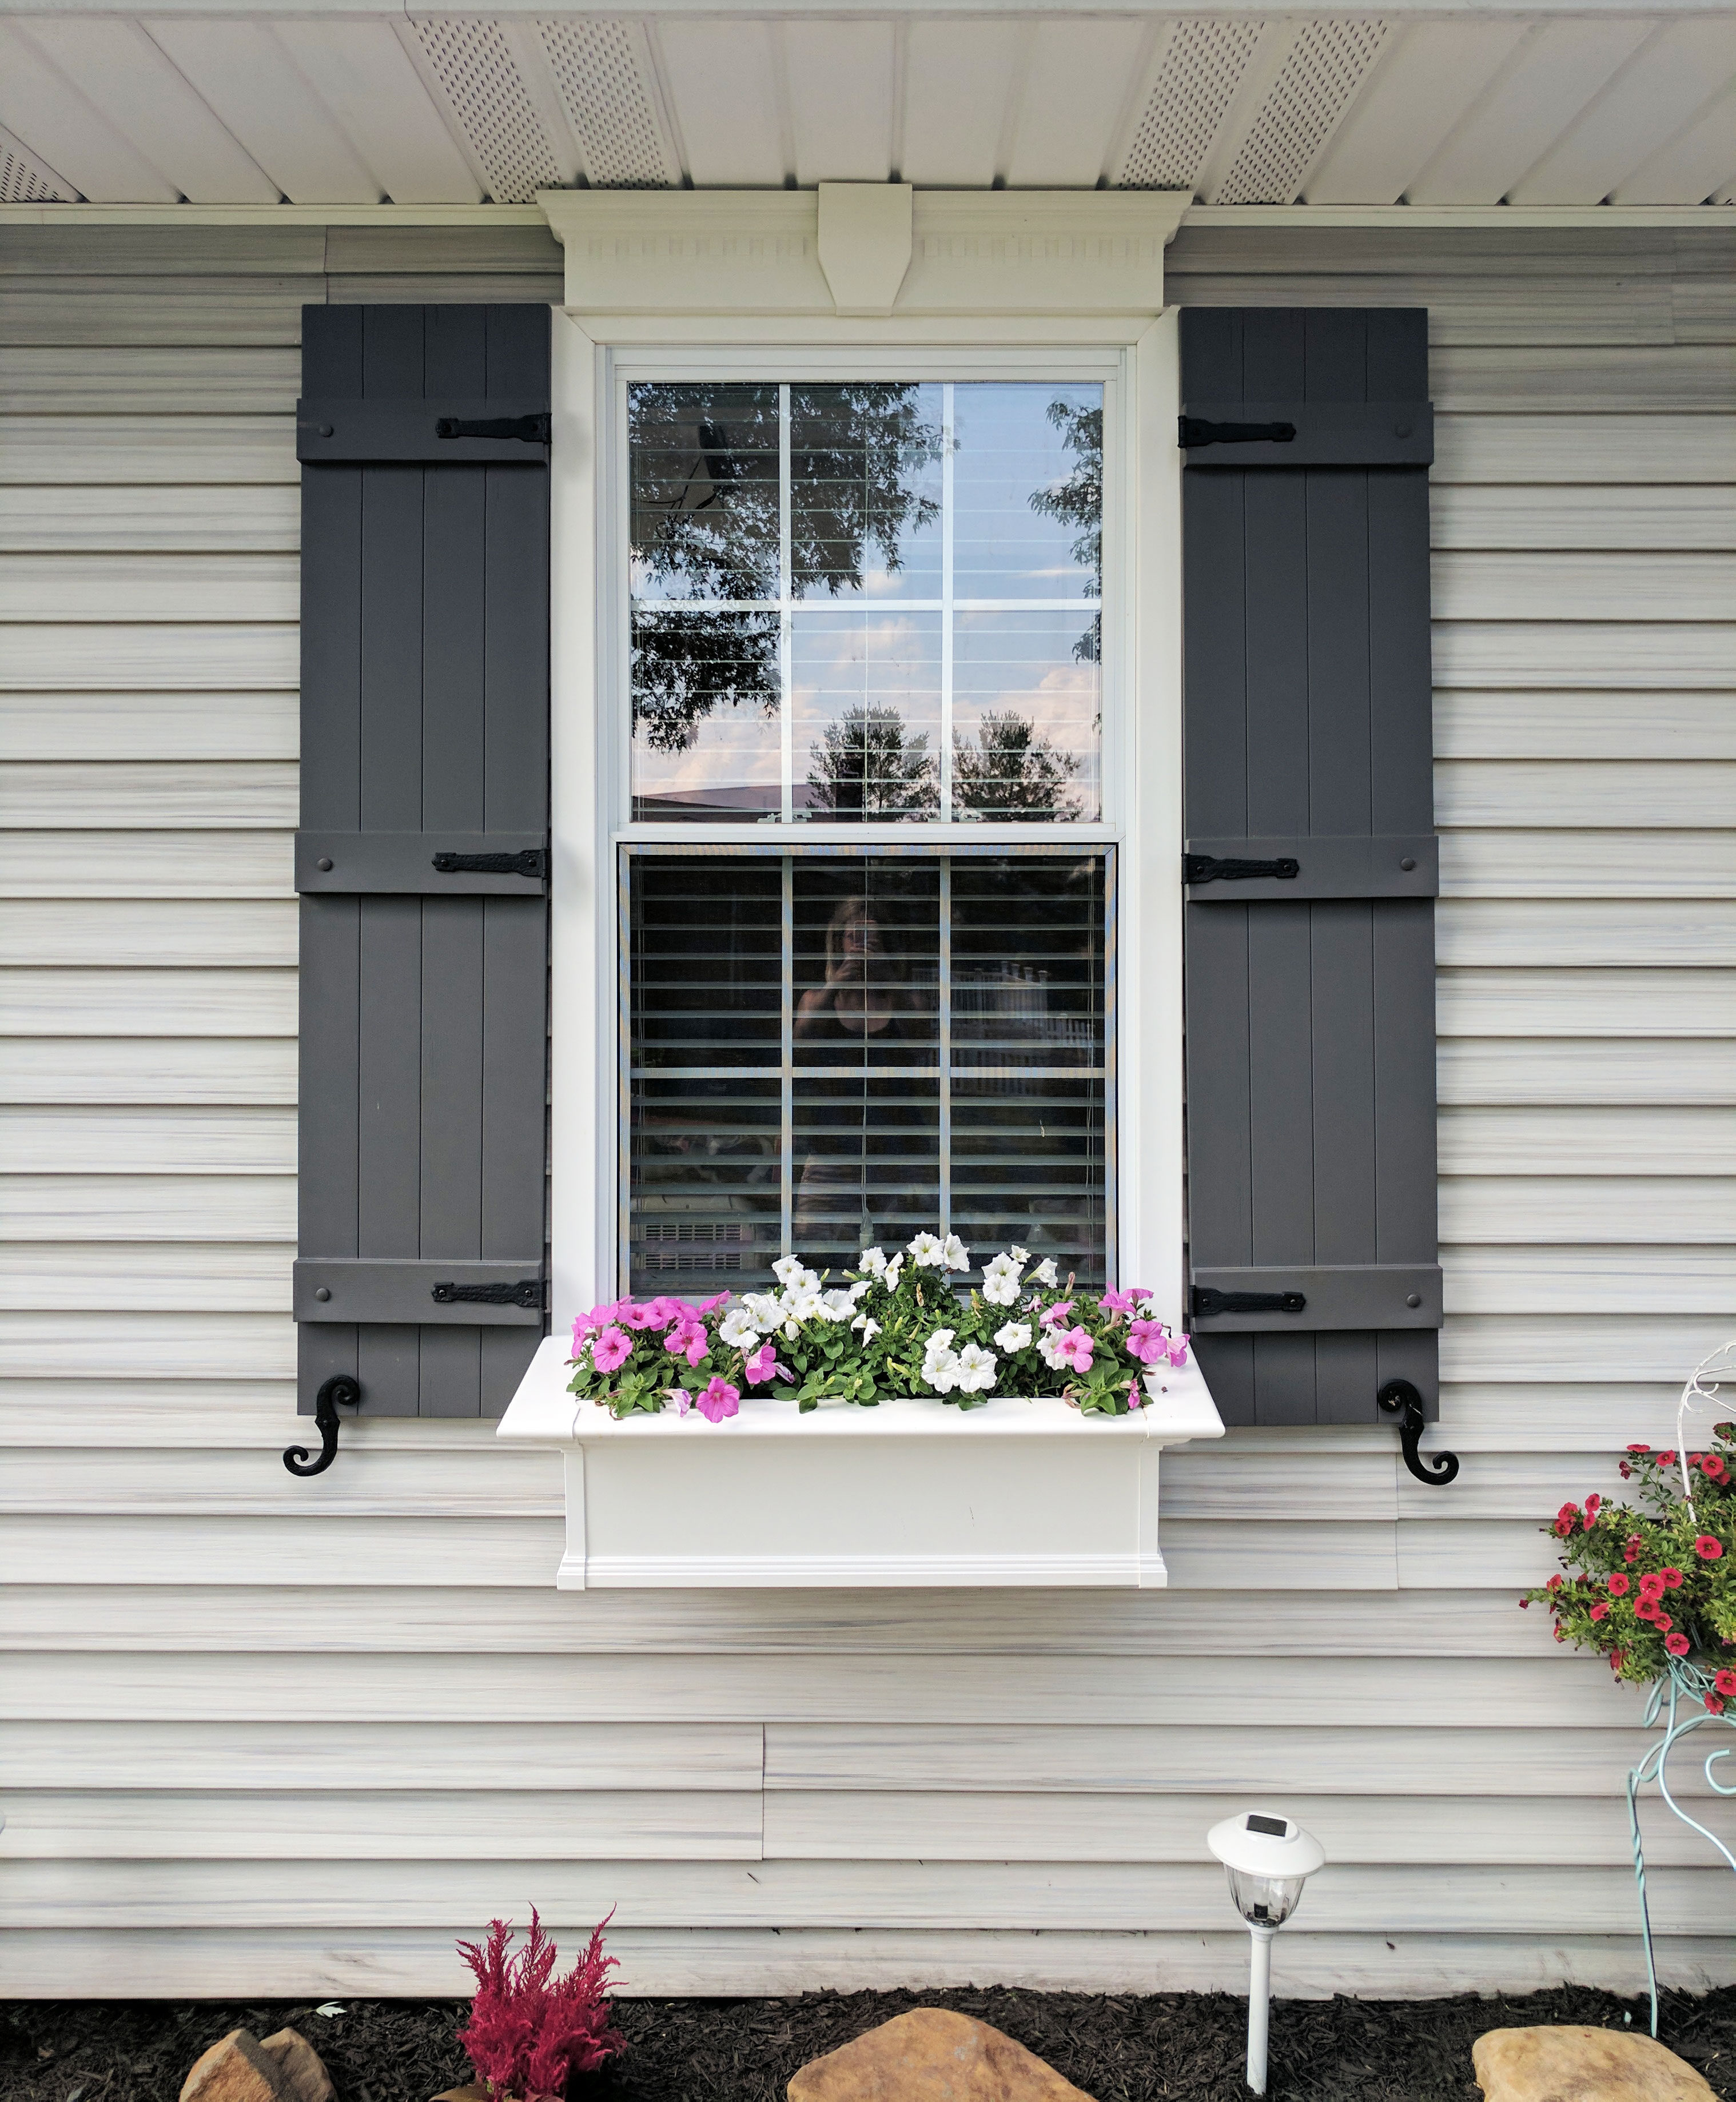 Board N Batten Shutters With Window Box On Ohio Home